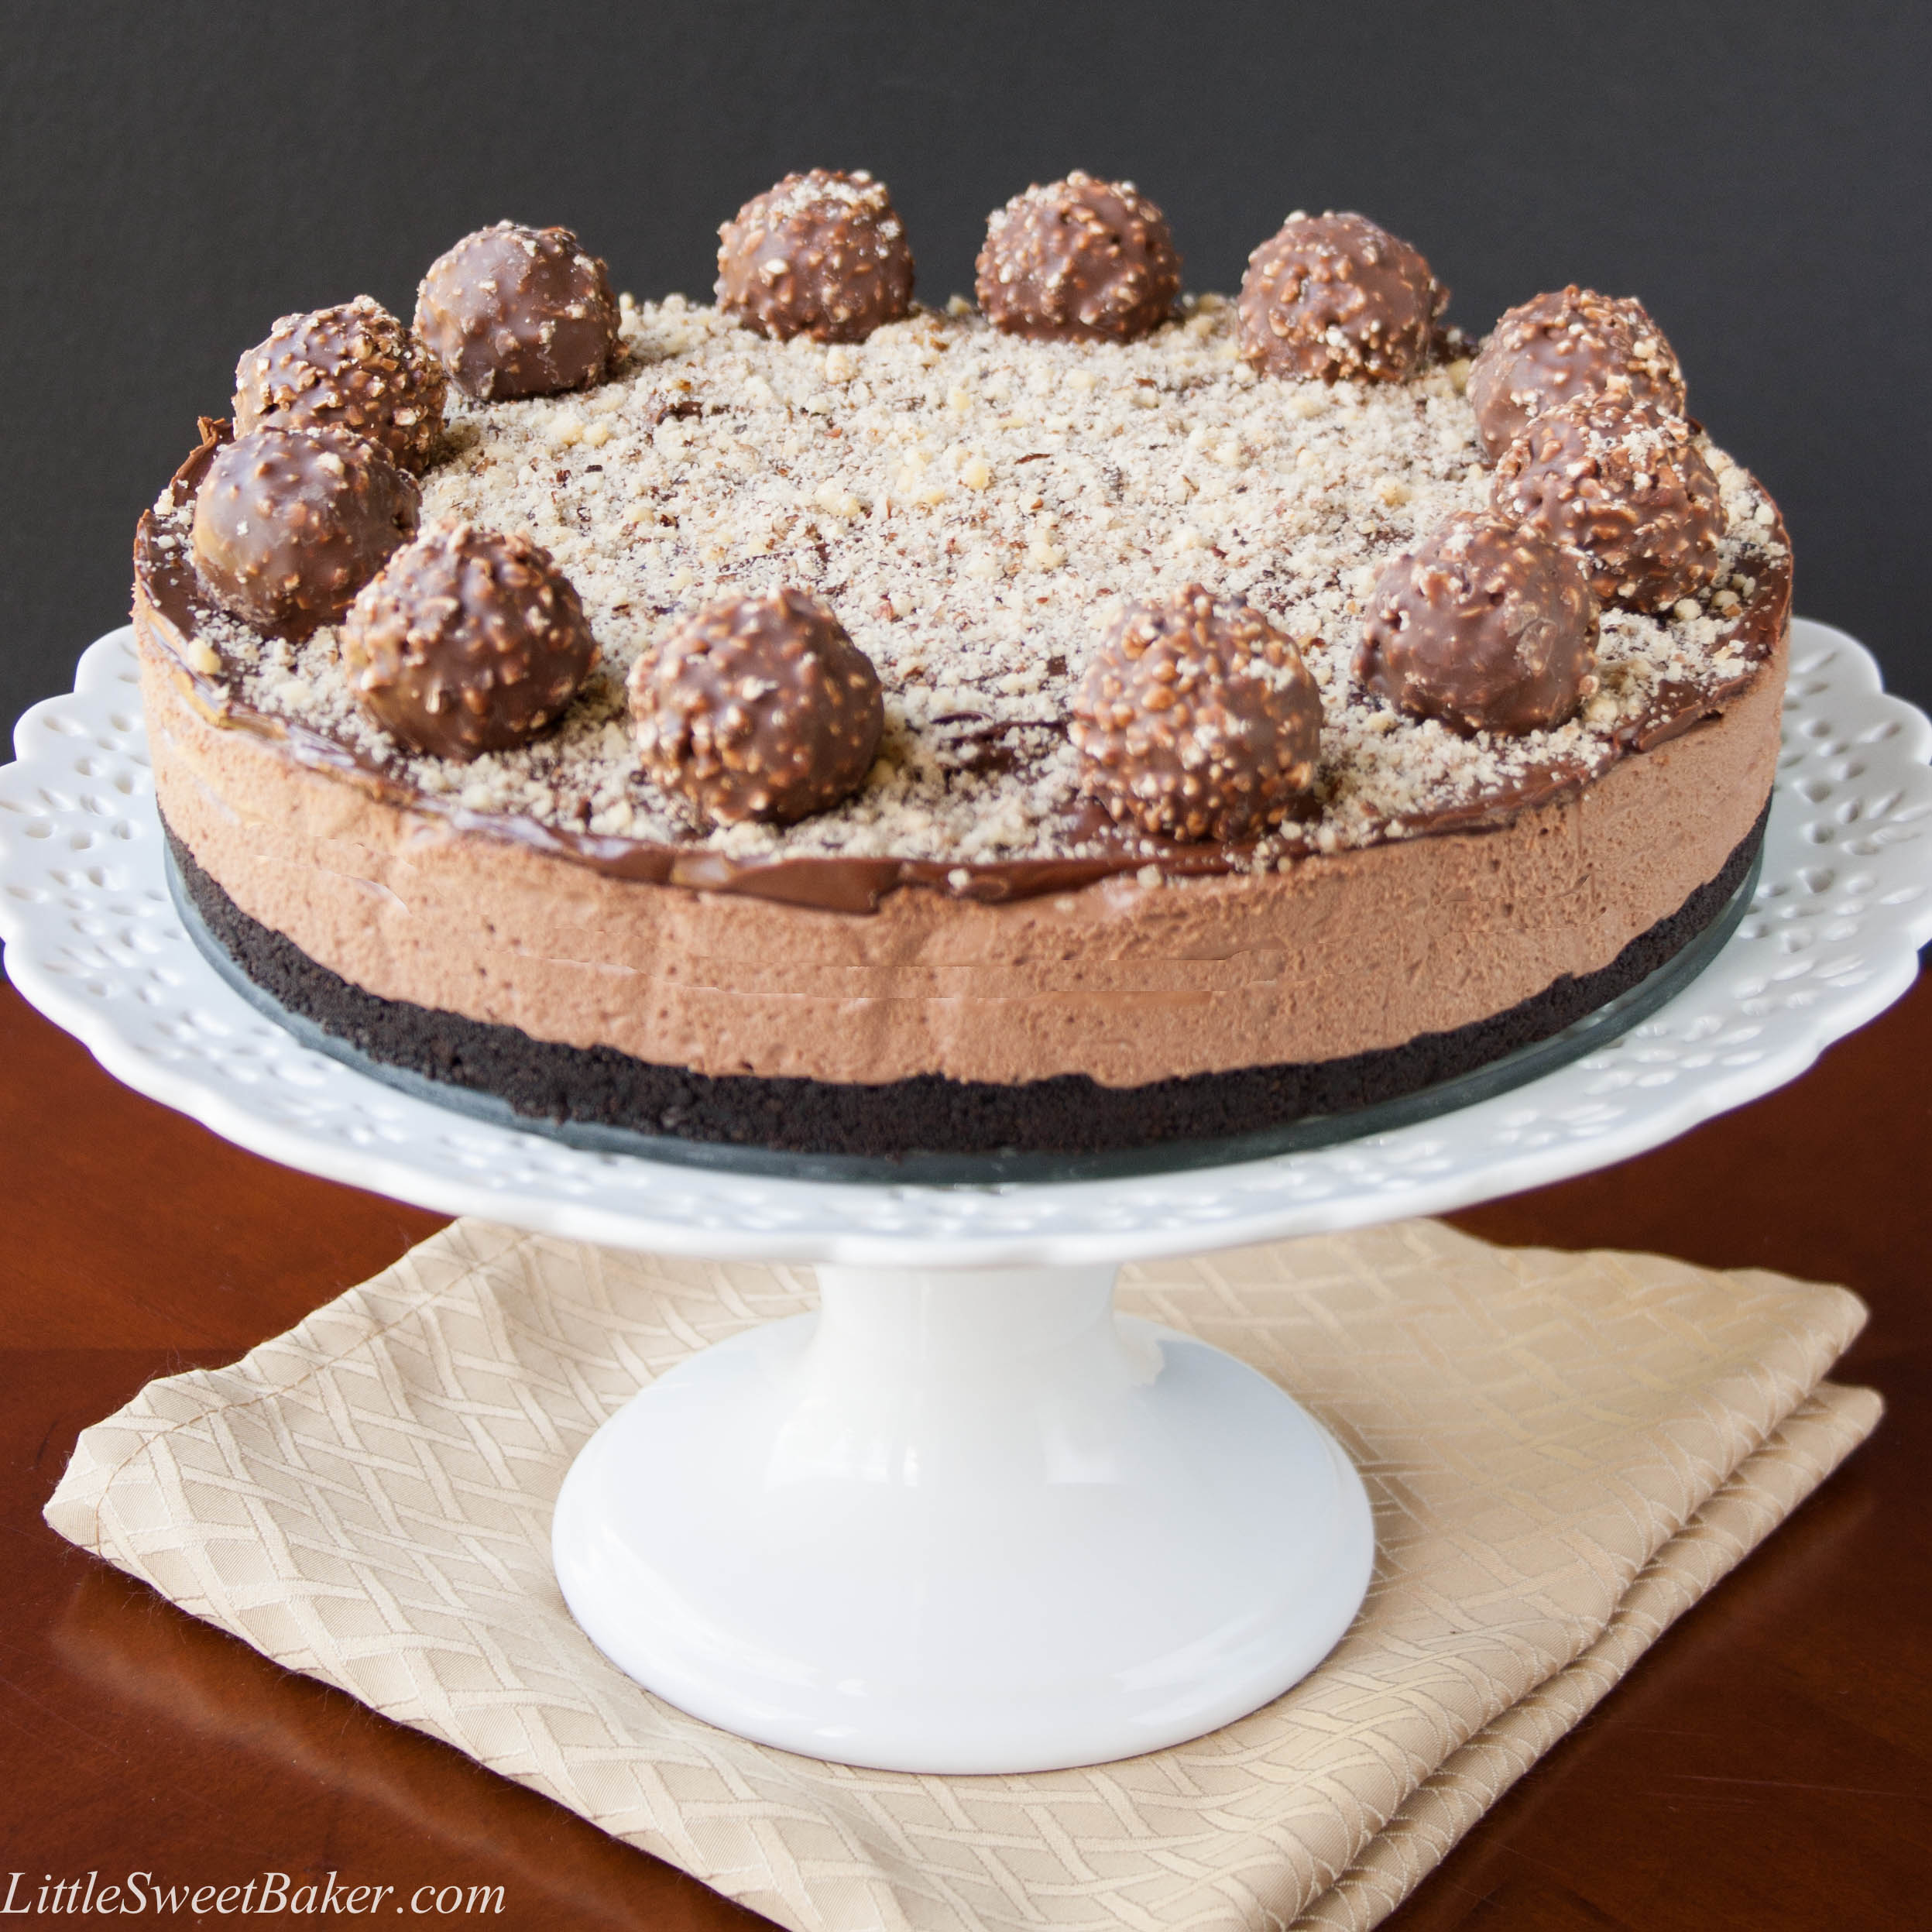 creamy chocolate hazelnut cheesecake filling, topped with a chocolate ...